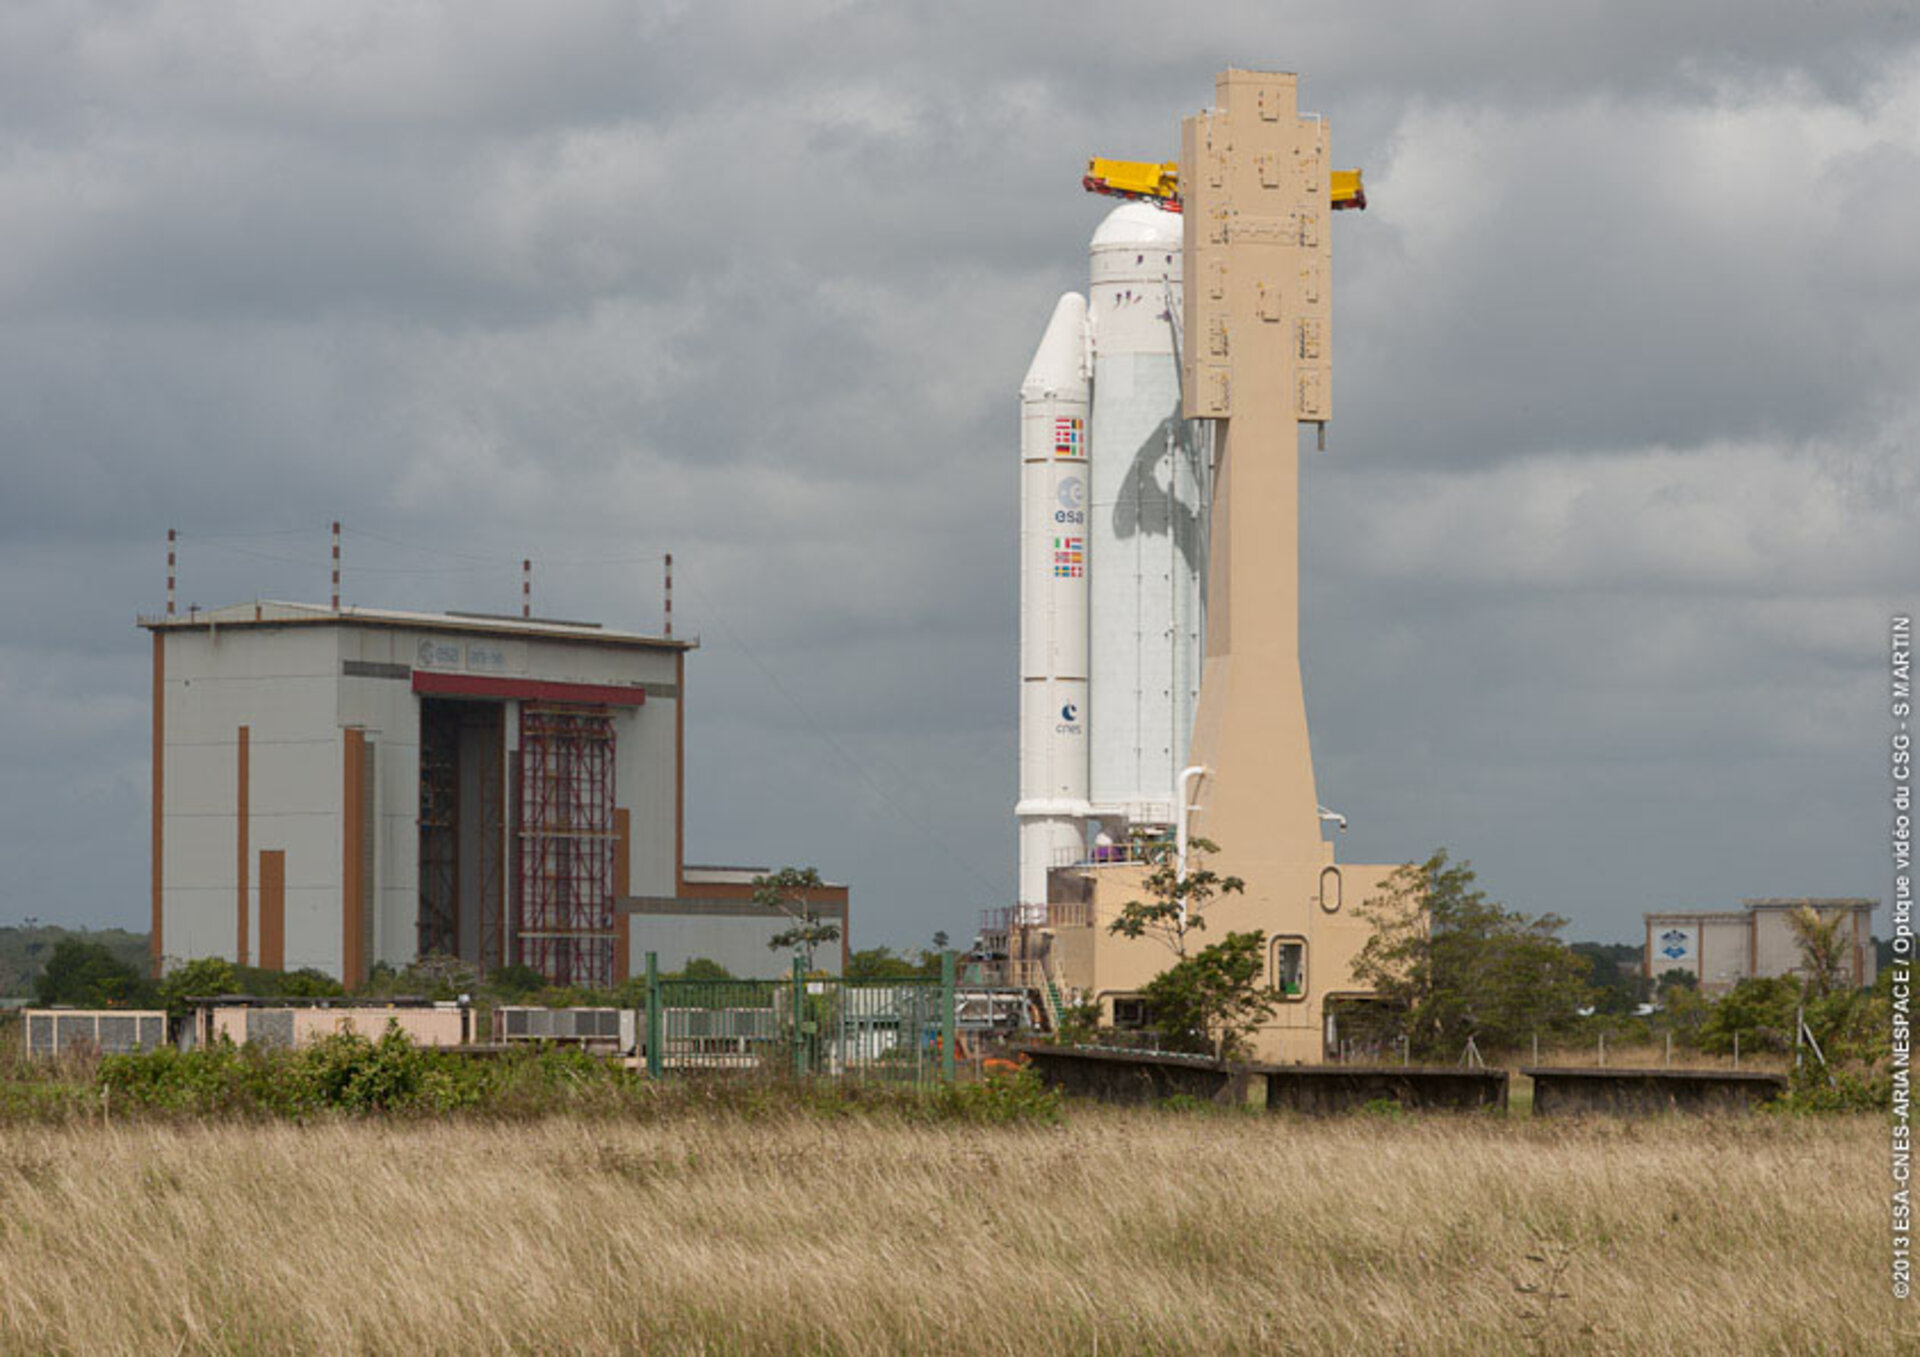 Ariane launcher ready for ATV-4